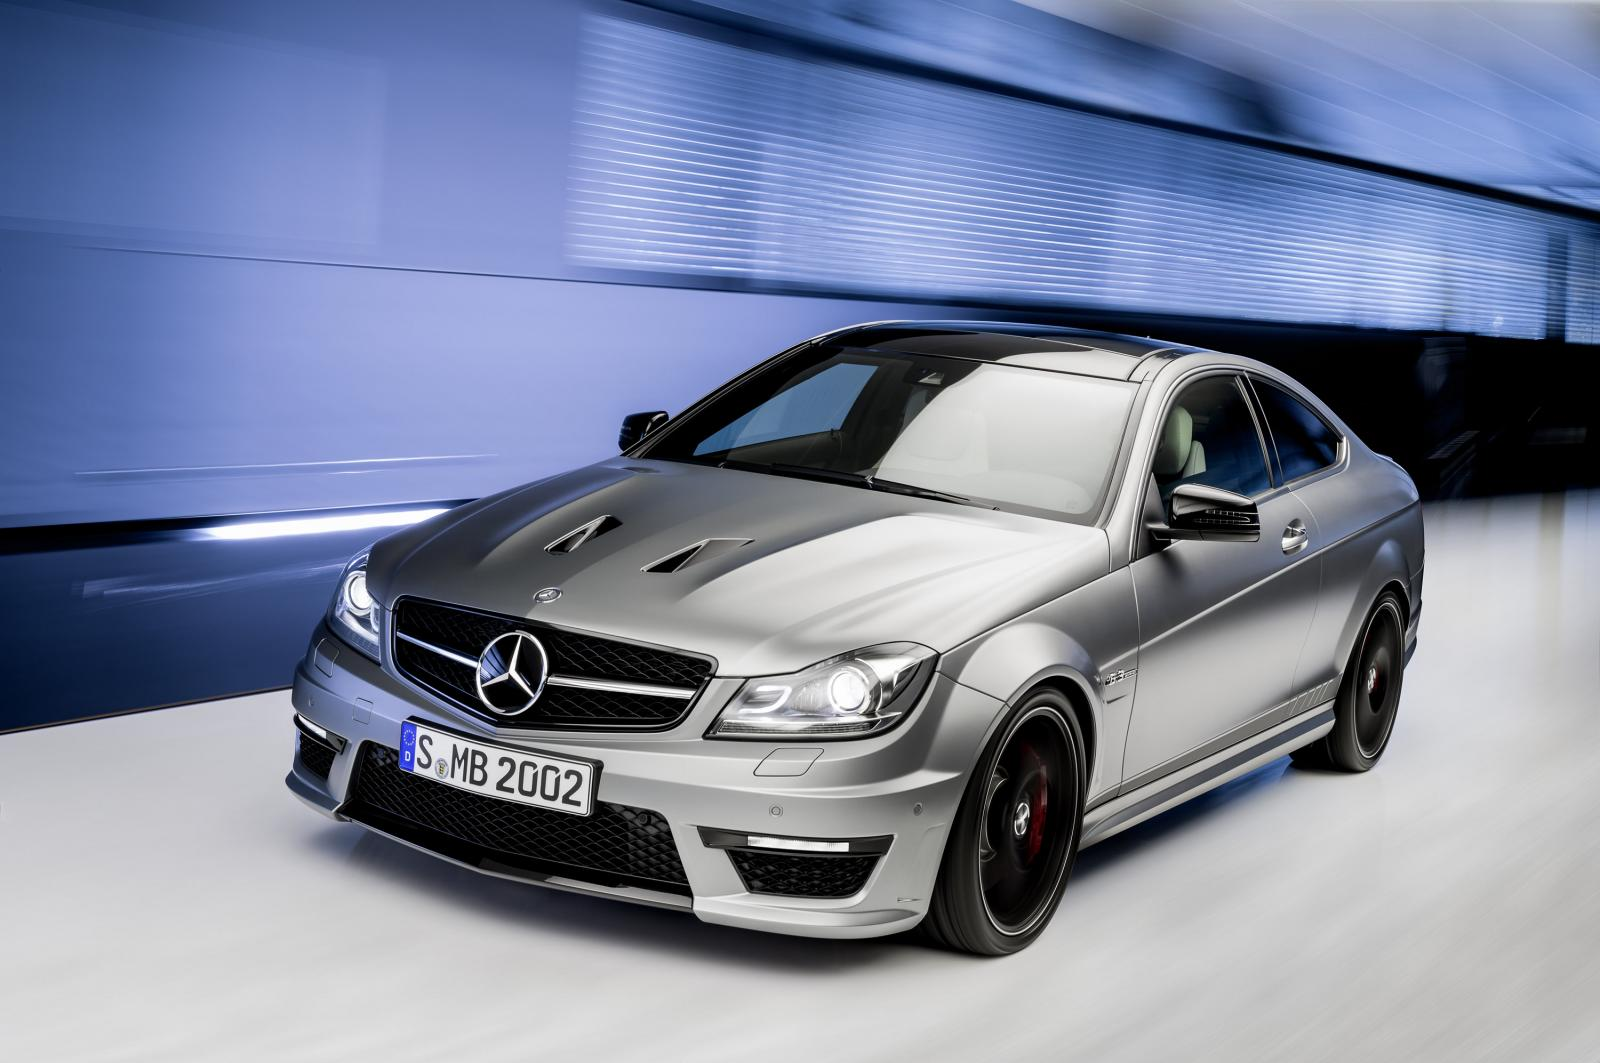 2014 mercedes benz c63 amg edition 507 released video for Mercedes benz amg 6 3